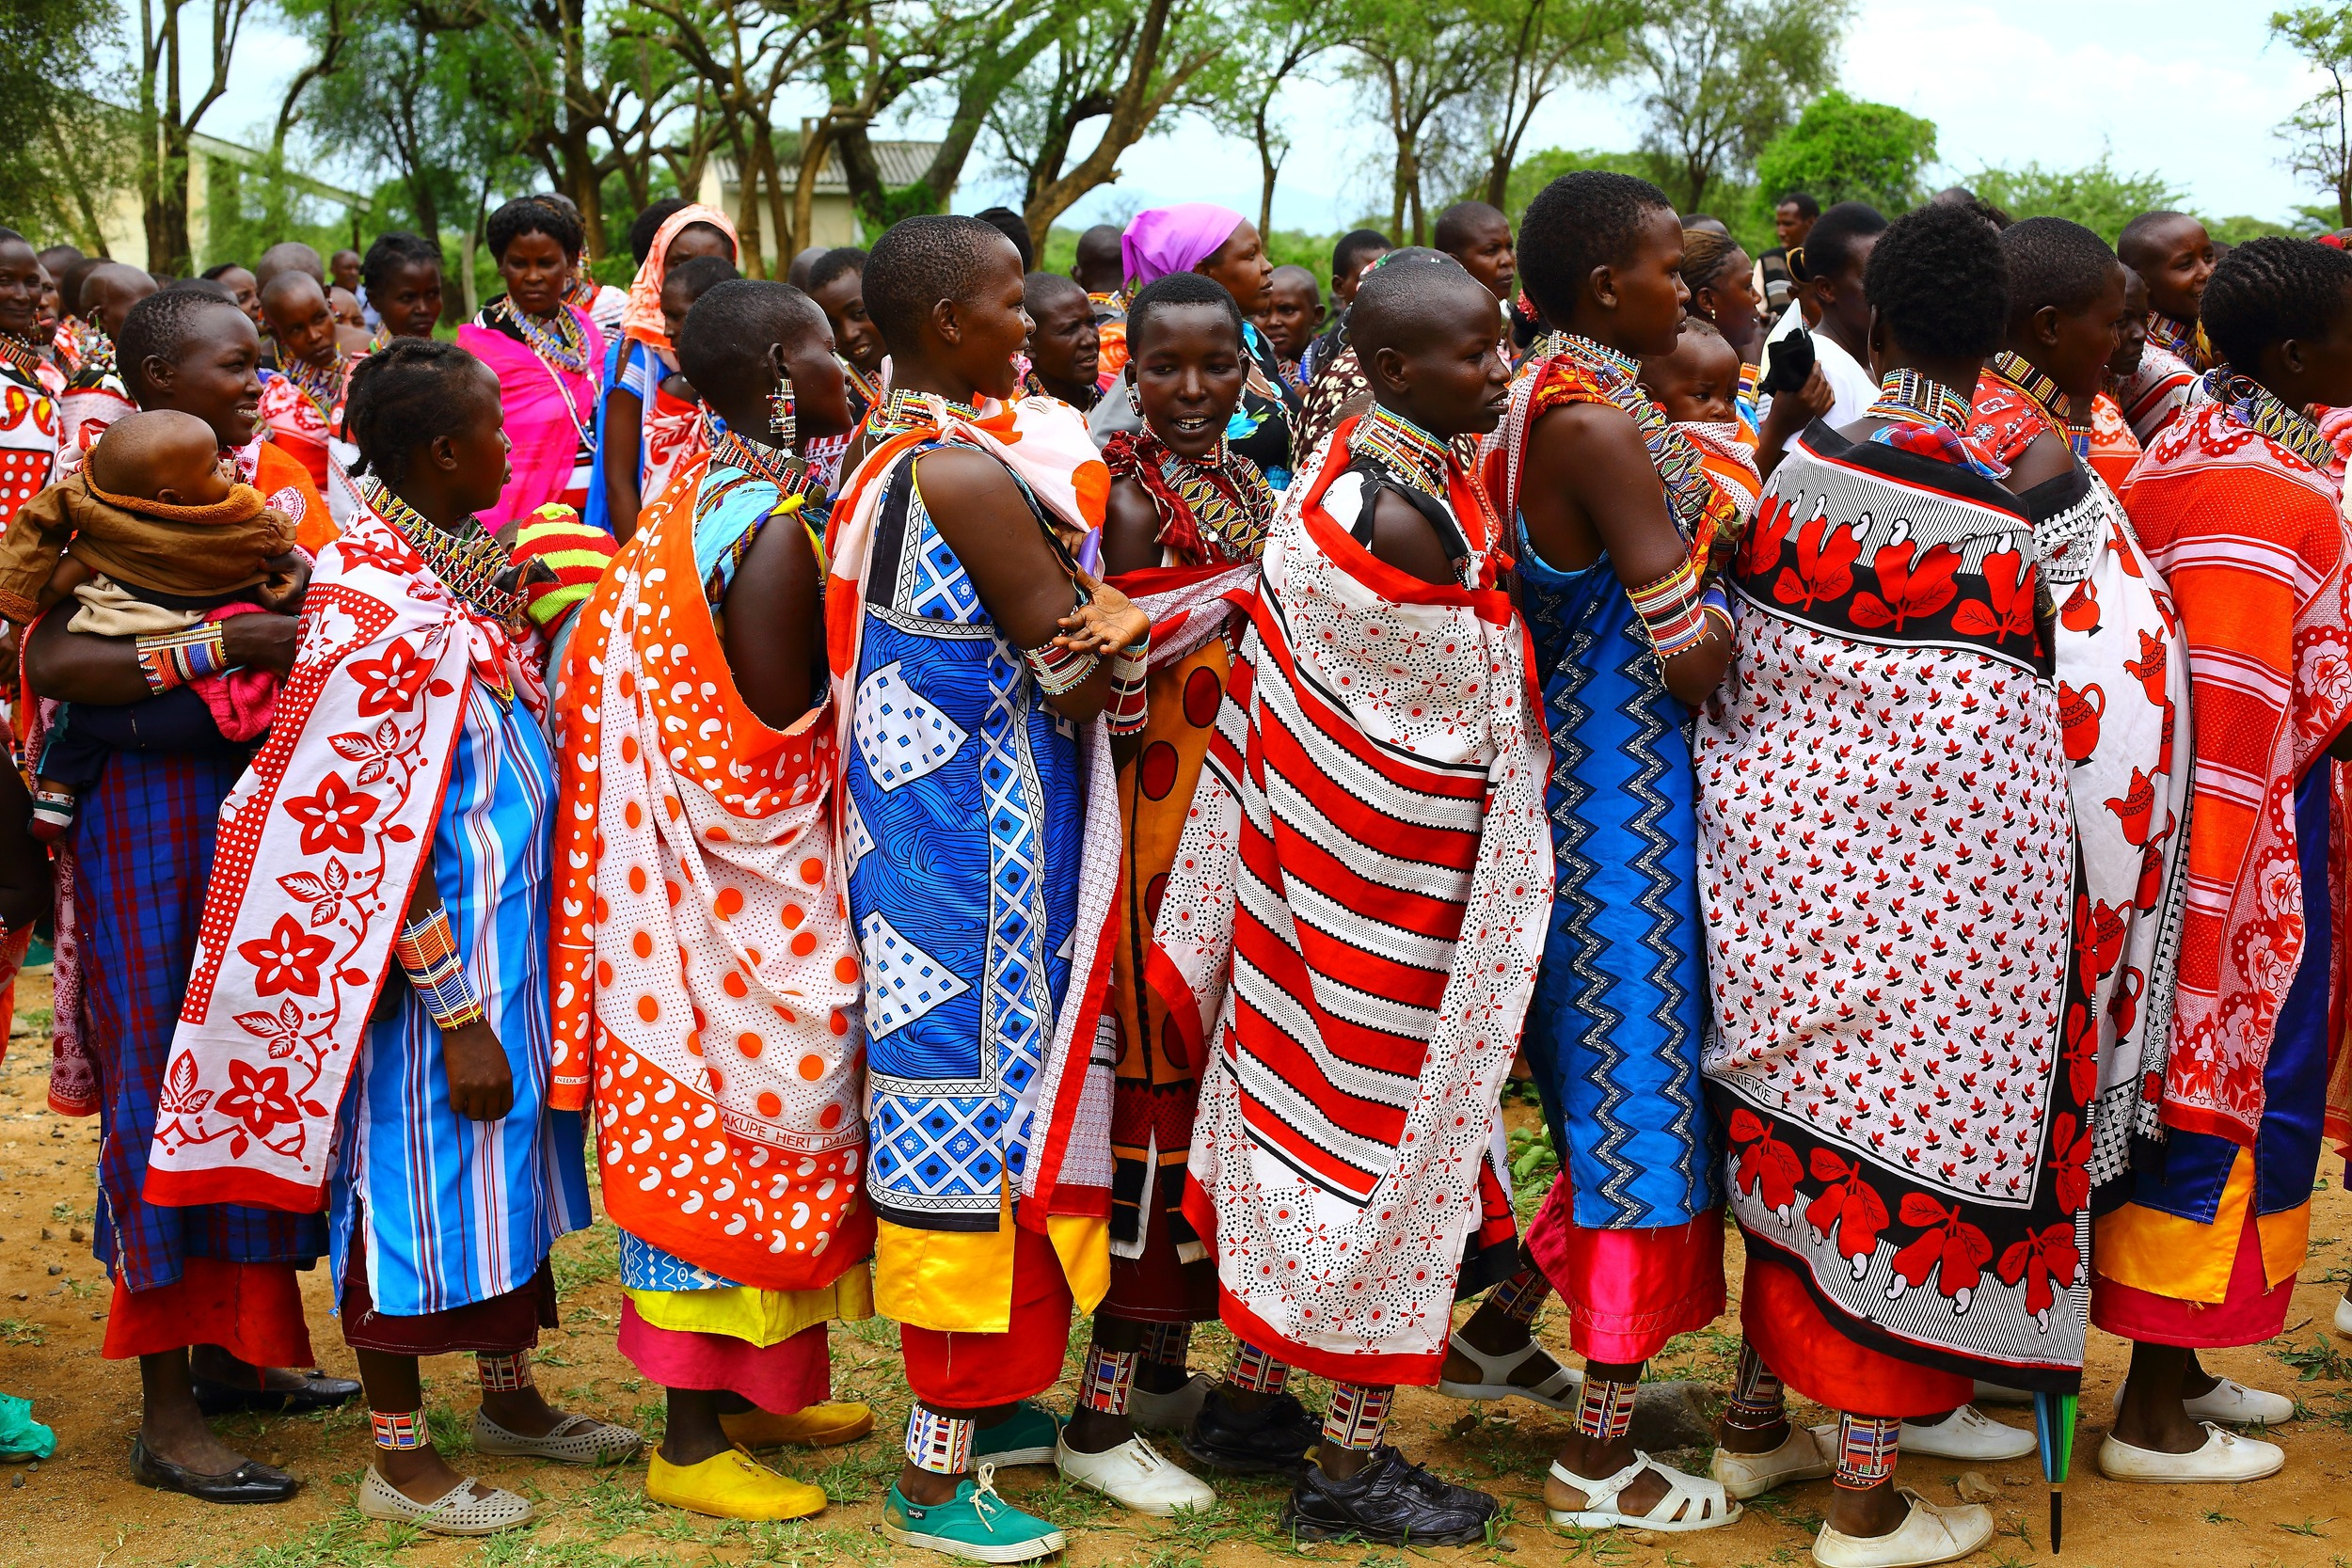 Maasai women queue up to vote for their preferred candidate in Kenya's election